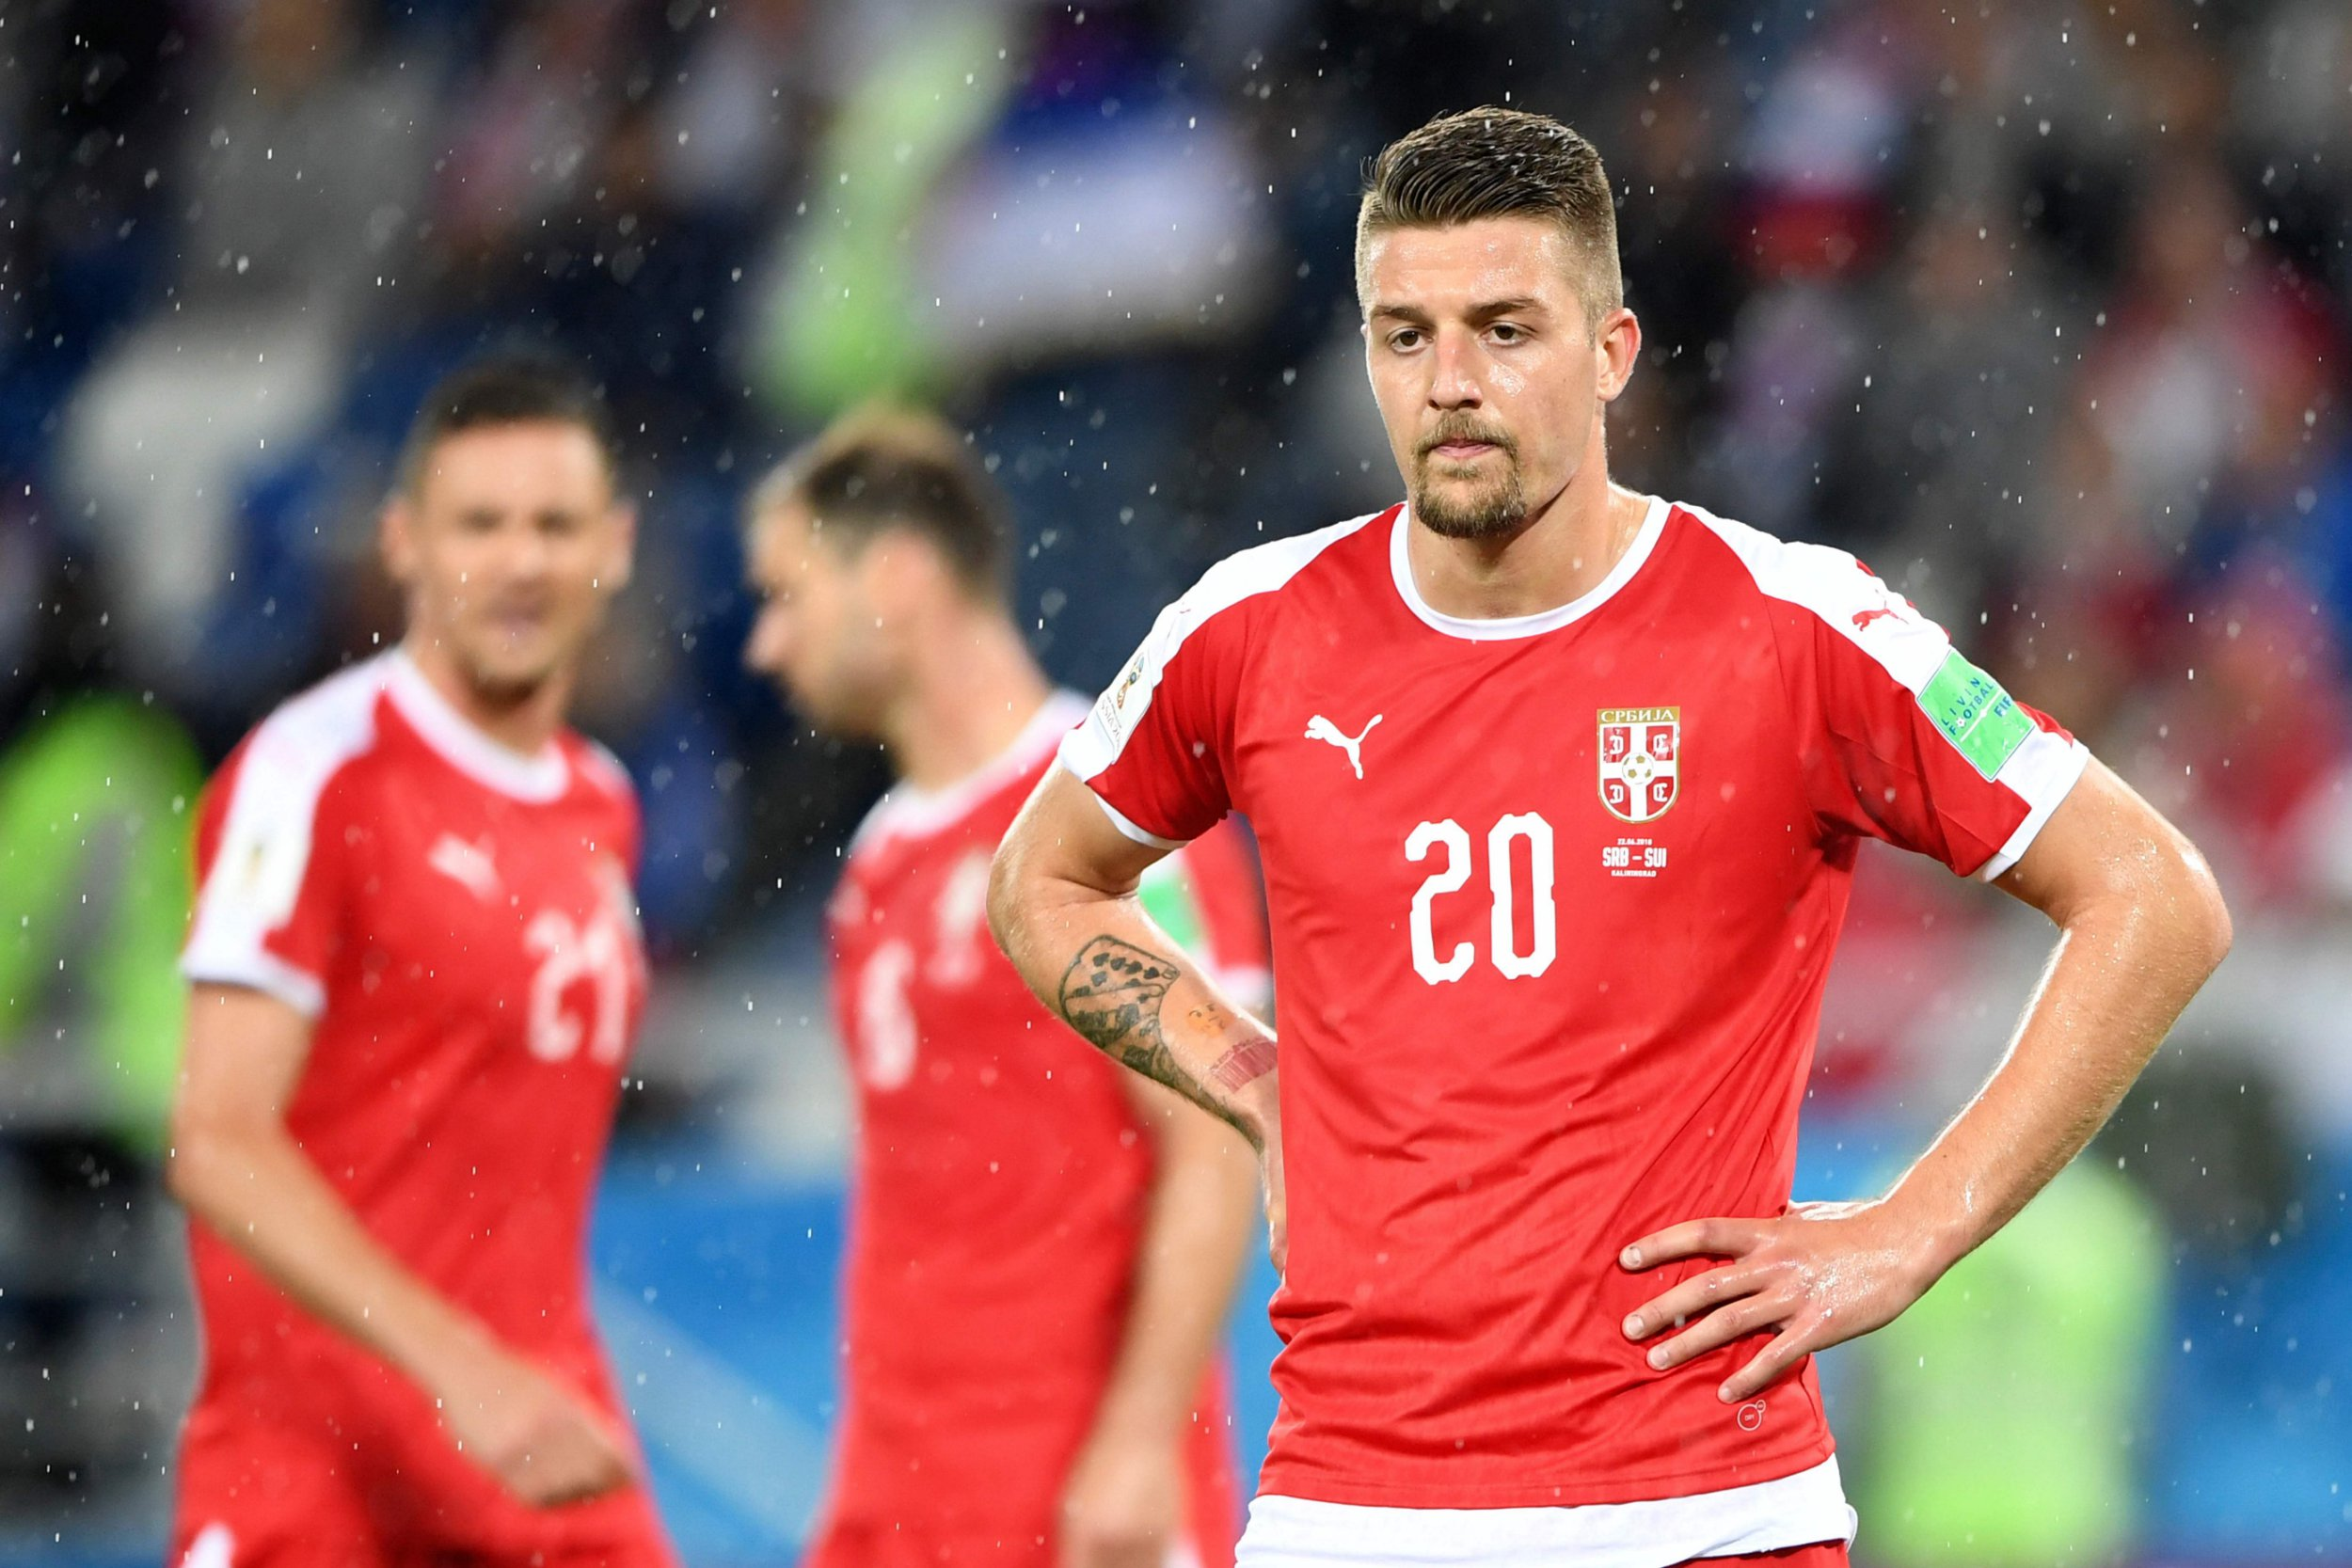 Serbia's midfielder Sergej Milinkovic-Savic reacts after losing their Russia 2018 World Cup Group E football match between Serbia and Switzerland at the Kaliningrad Stadium in Kaliningrad on June 22, 2018. / AFP PHOTO / OZAN KOSE / RESTRICTED TO EDITORIAL USE - NO MOBILE PUSH ALERTS/DOWNLOADSOZAN KOSE/AFP/Getty Images